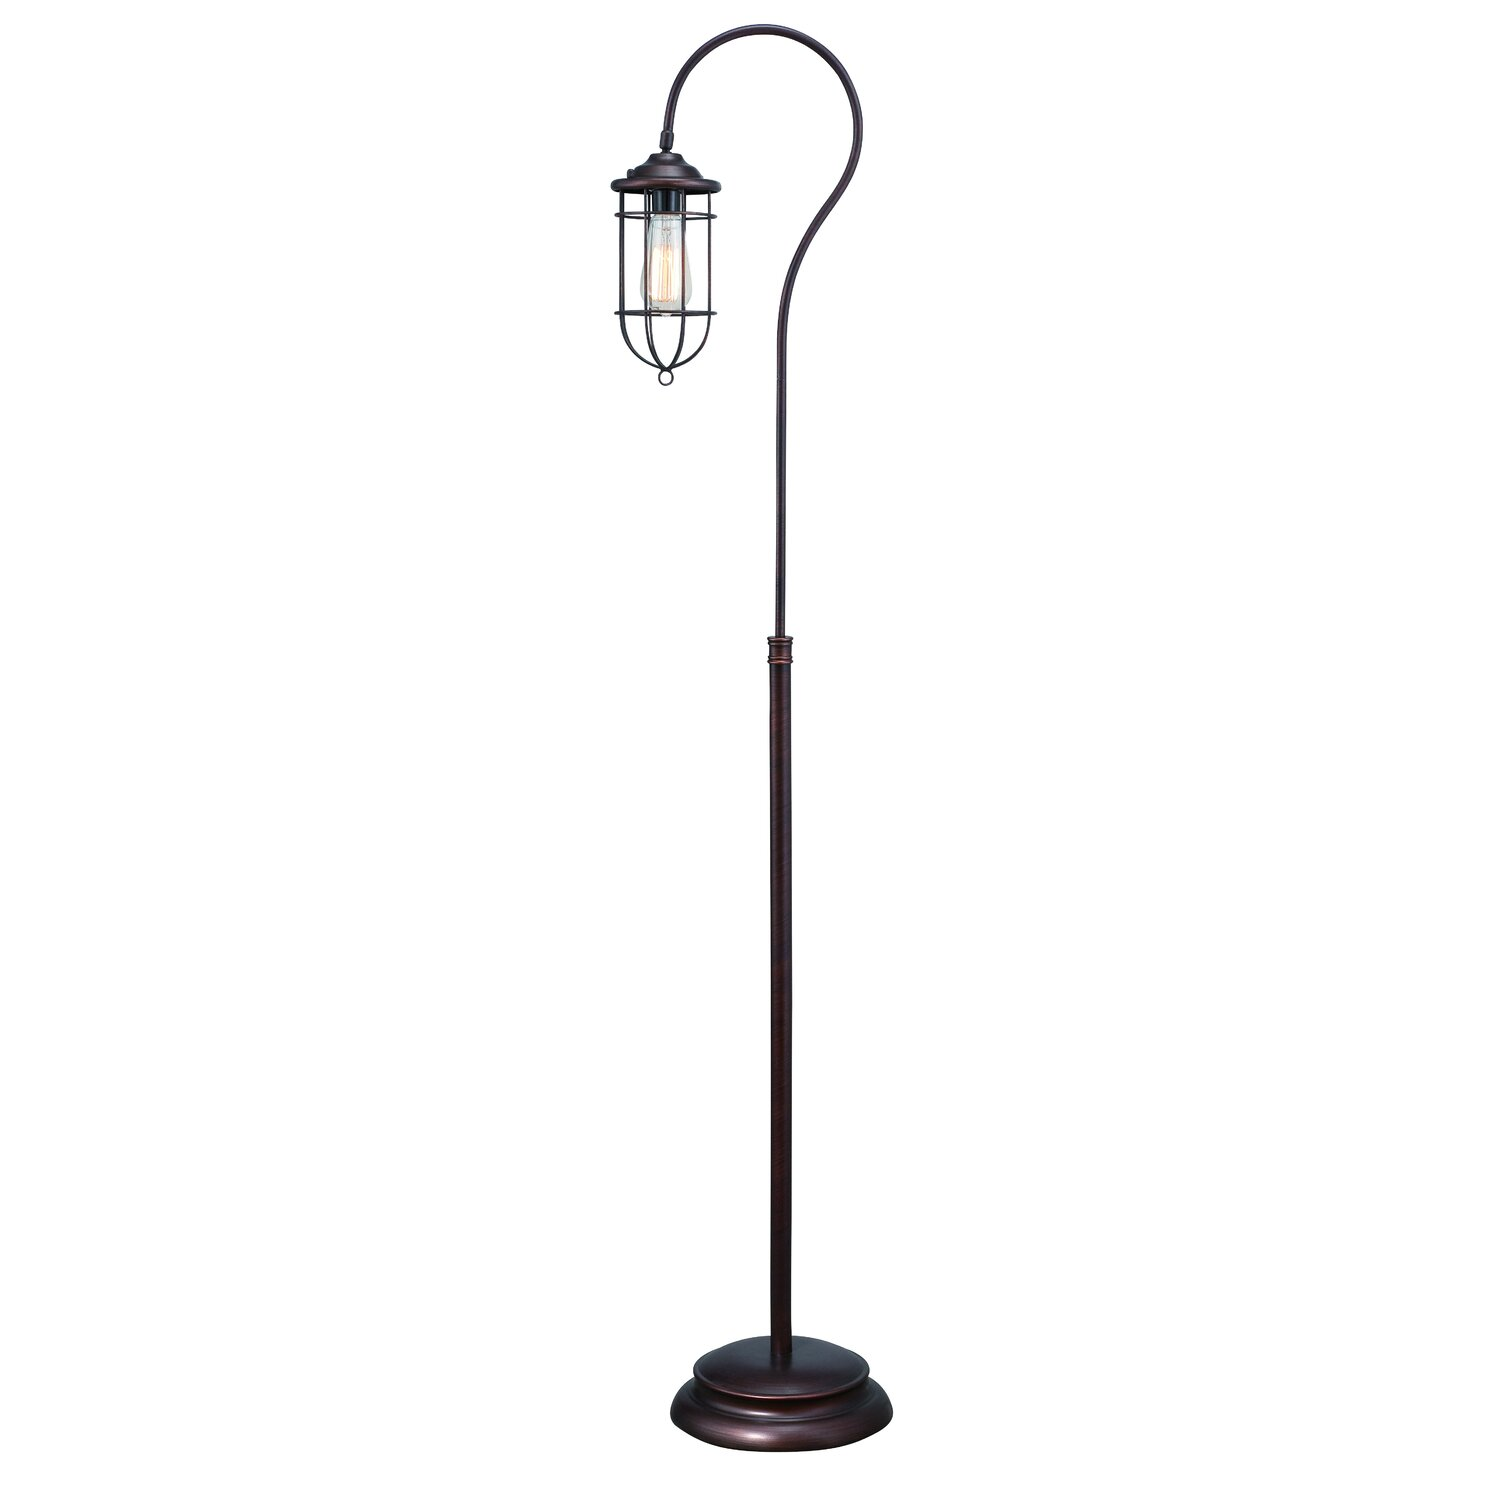 Normande Lighting Vintage 62